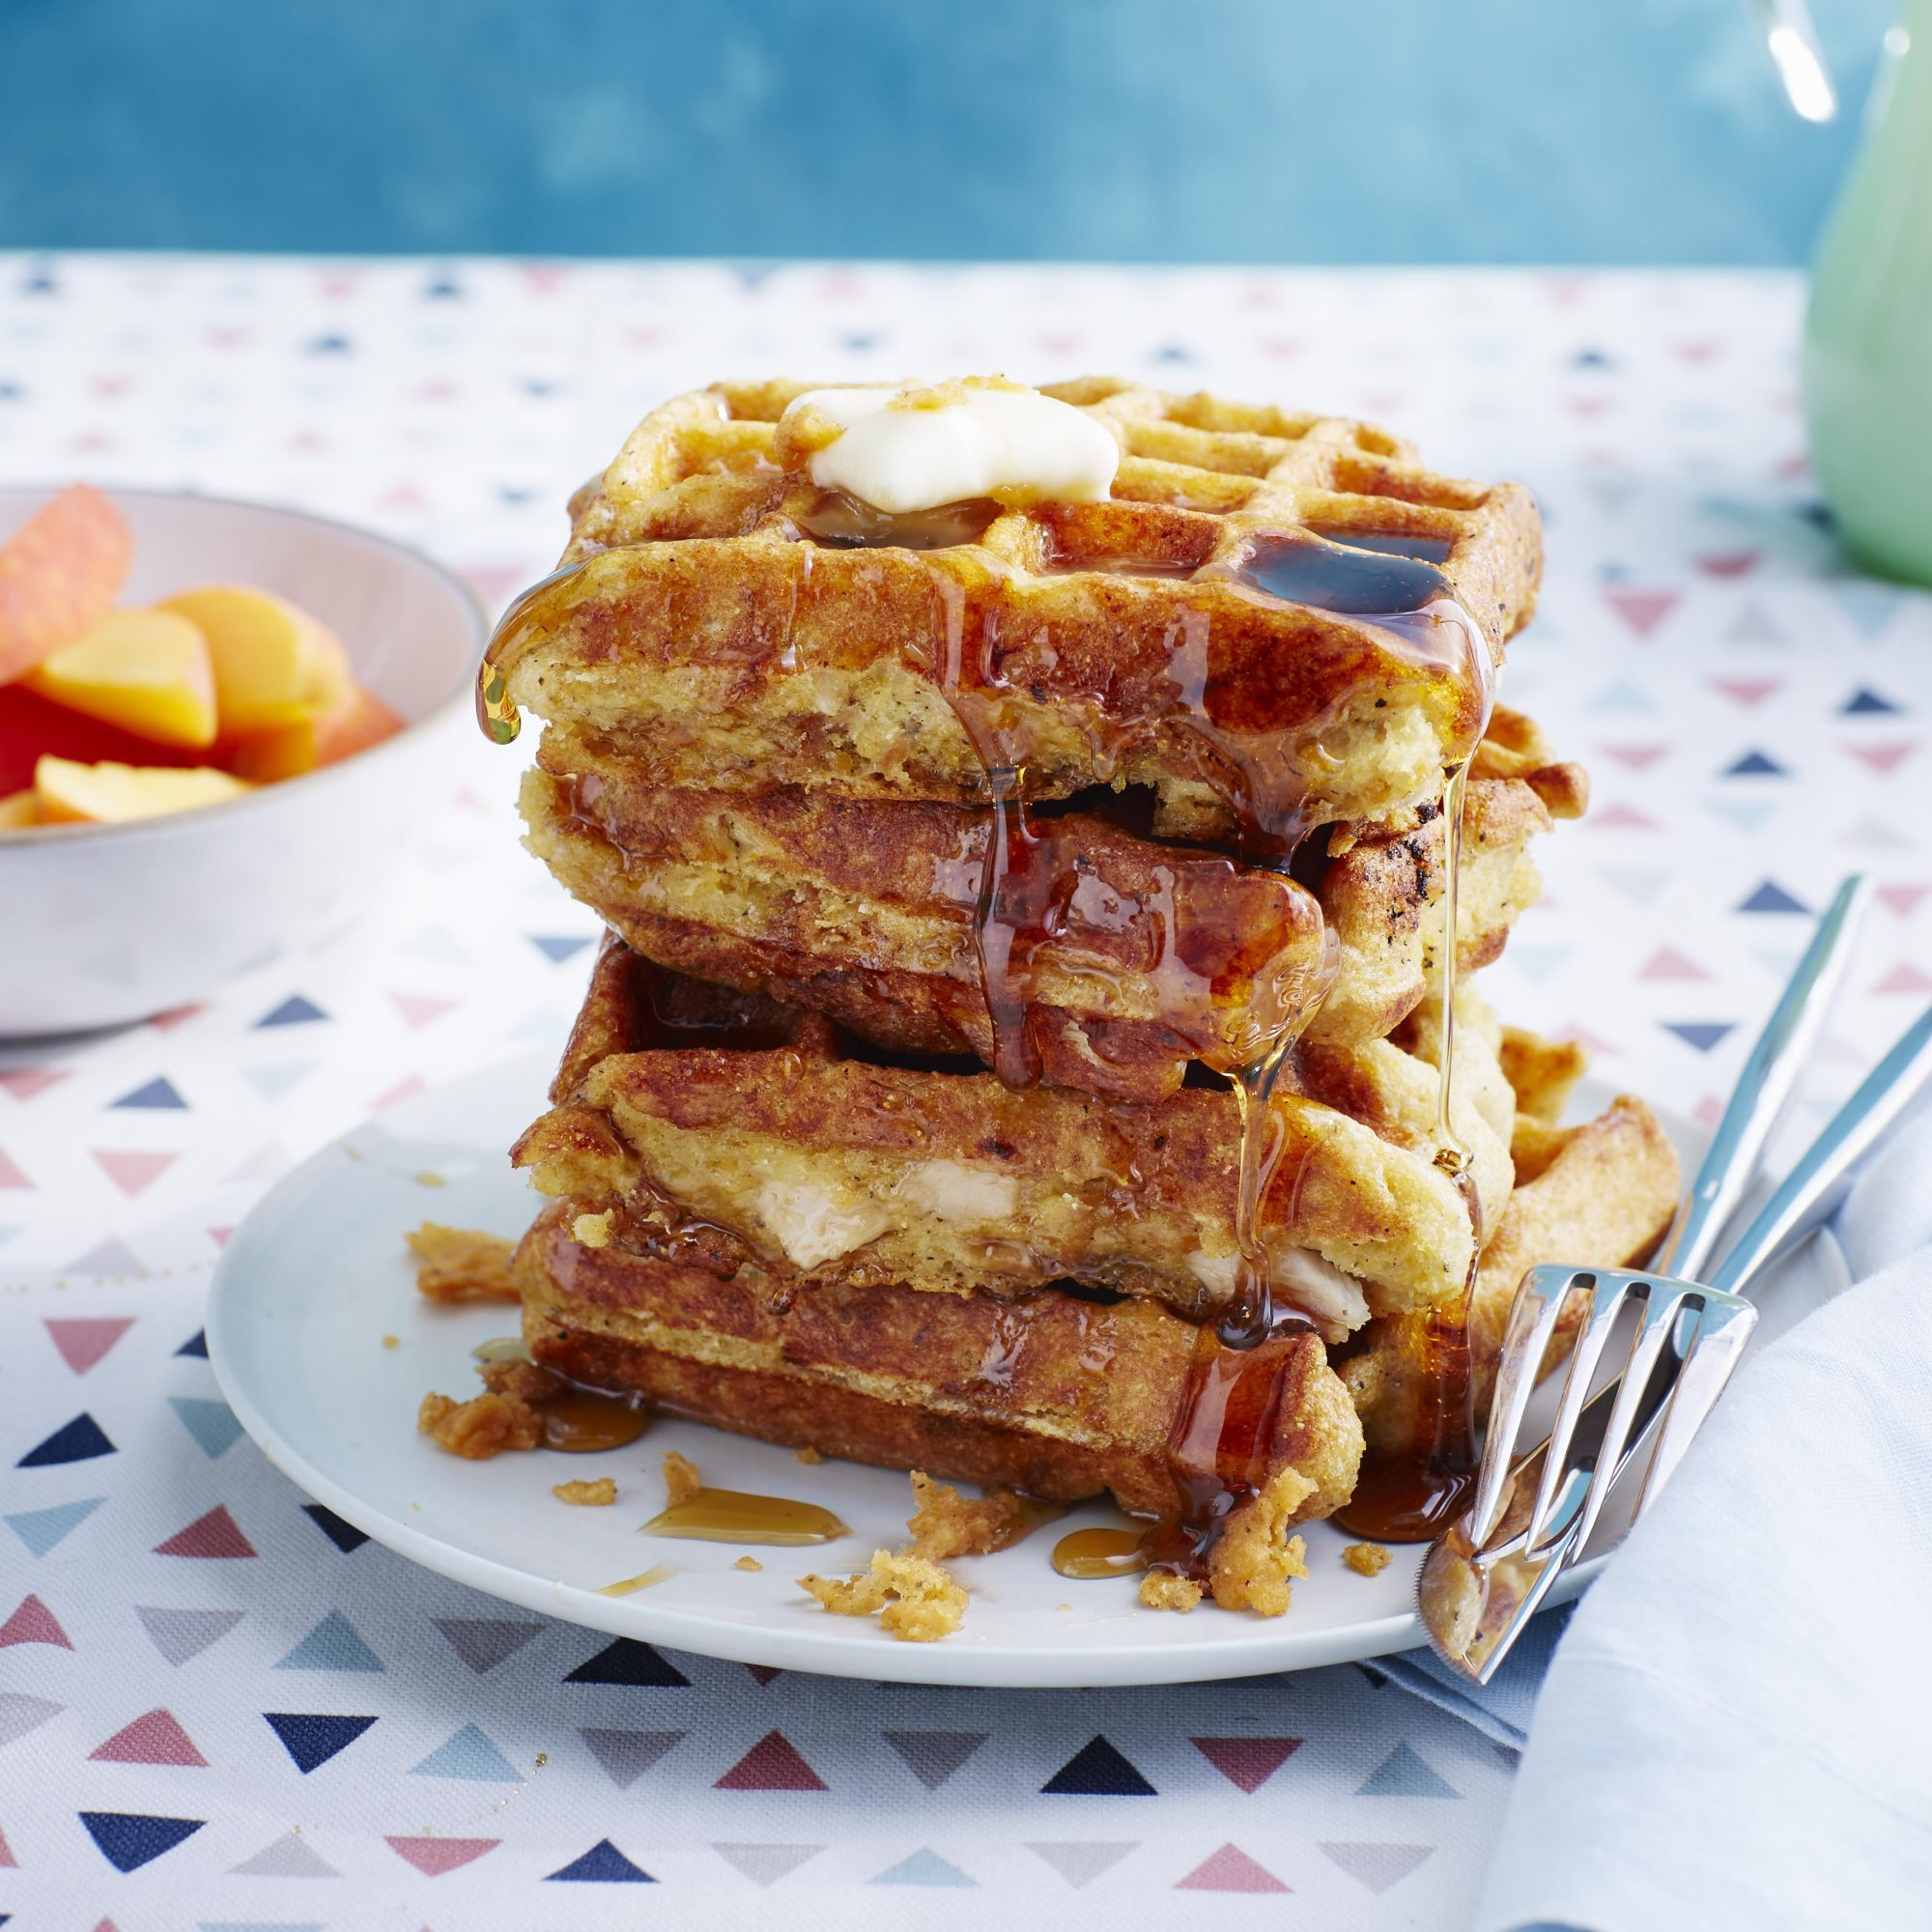 Chicken in Waffles image